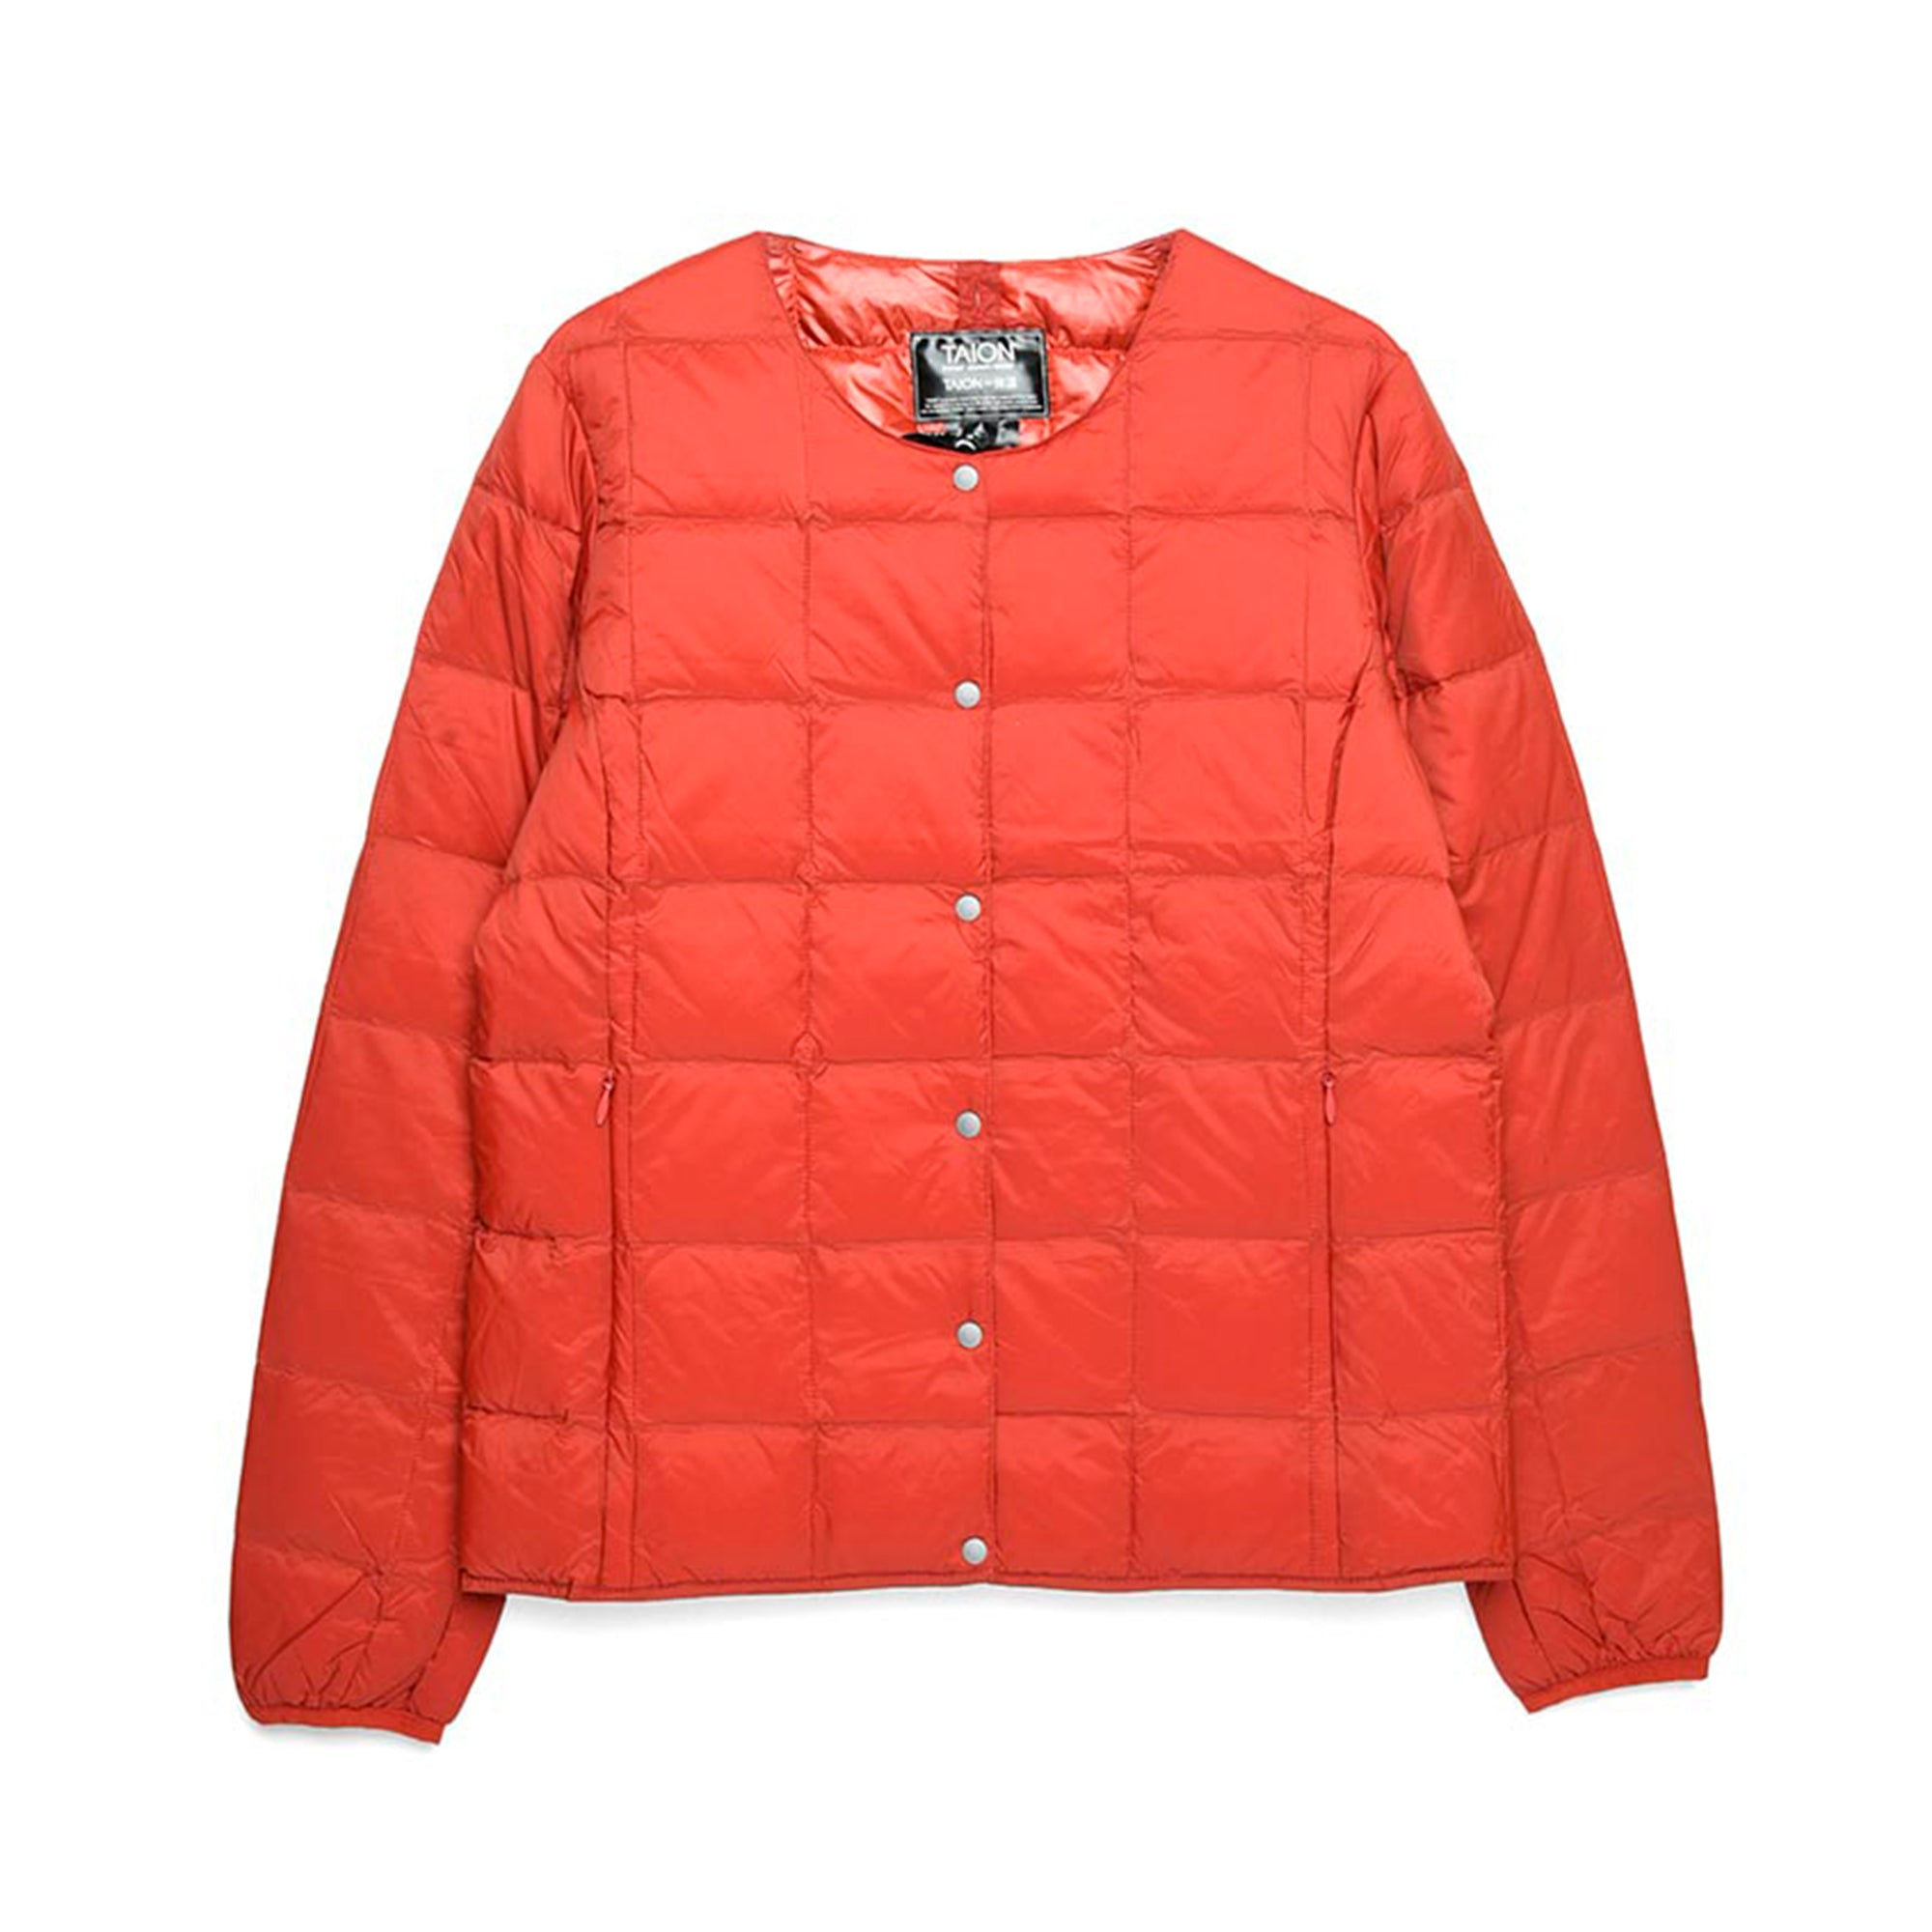 Taion Womens Crew Neck Button Down Jacket: Brick Red - The Union Project